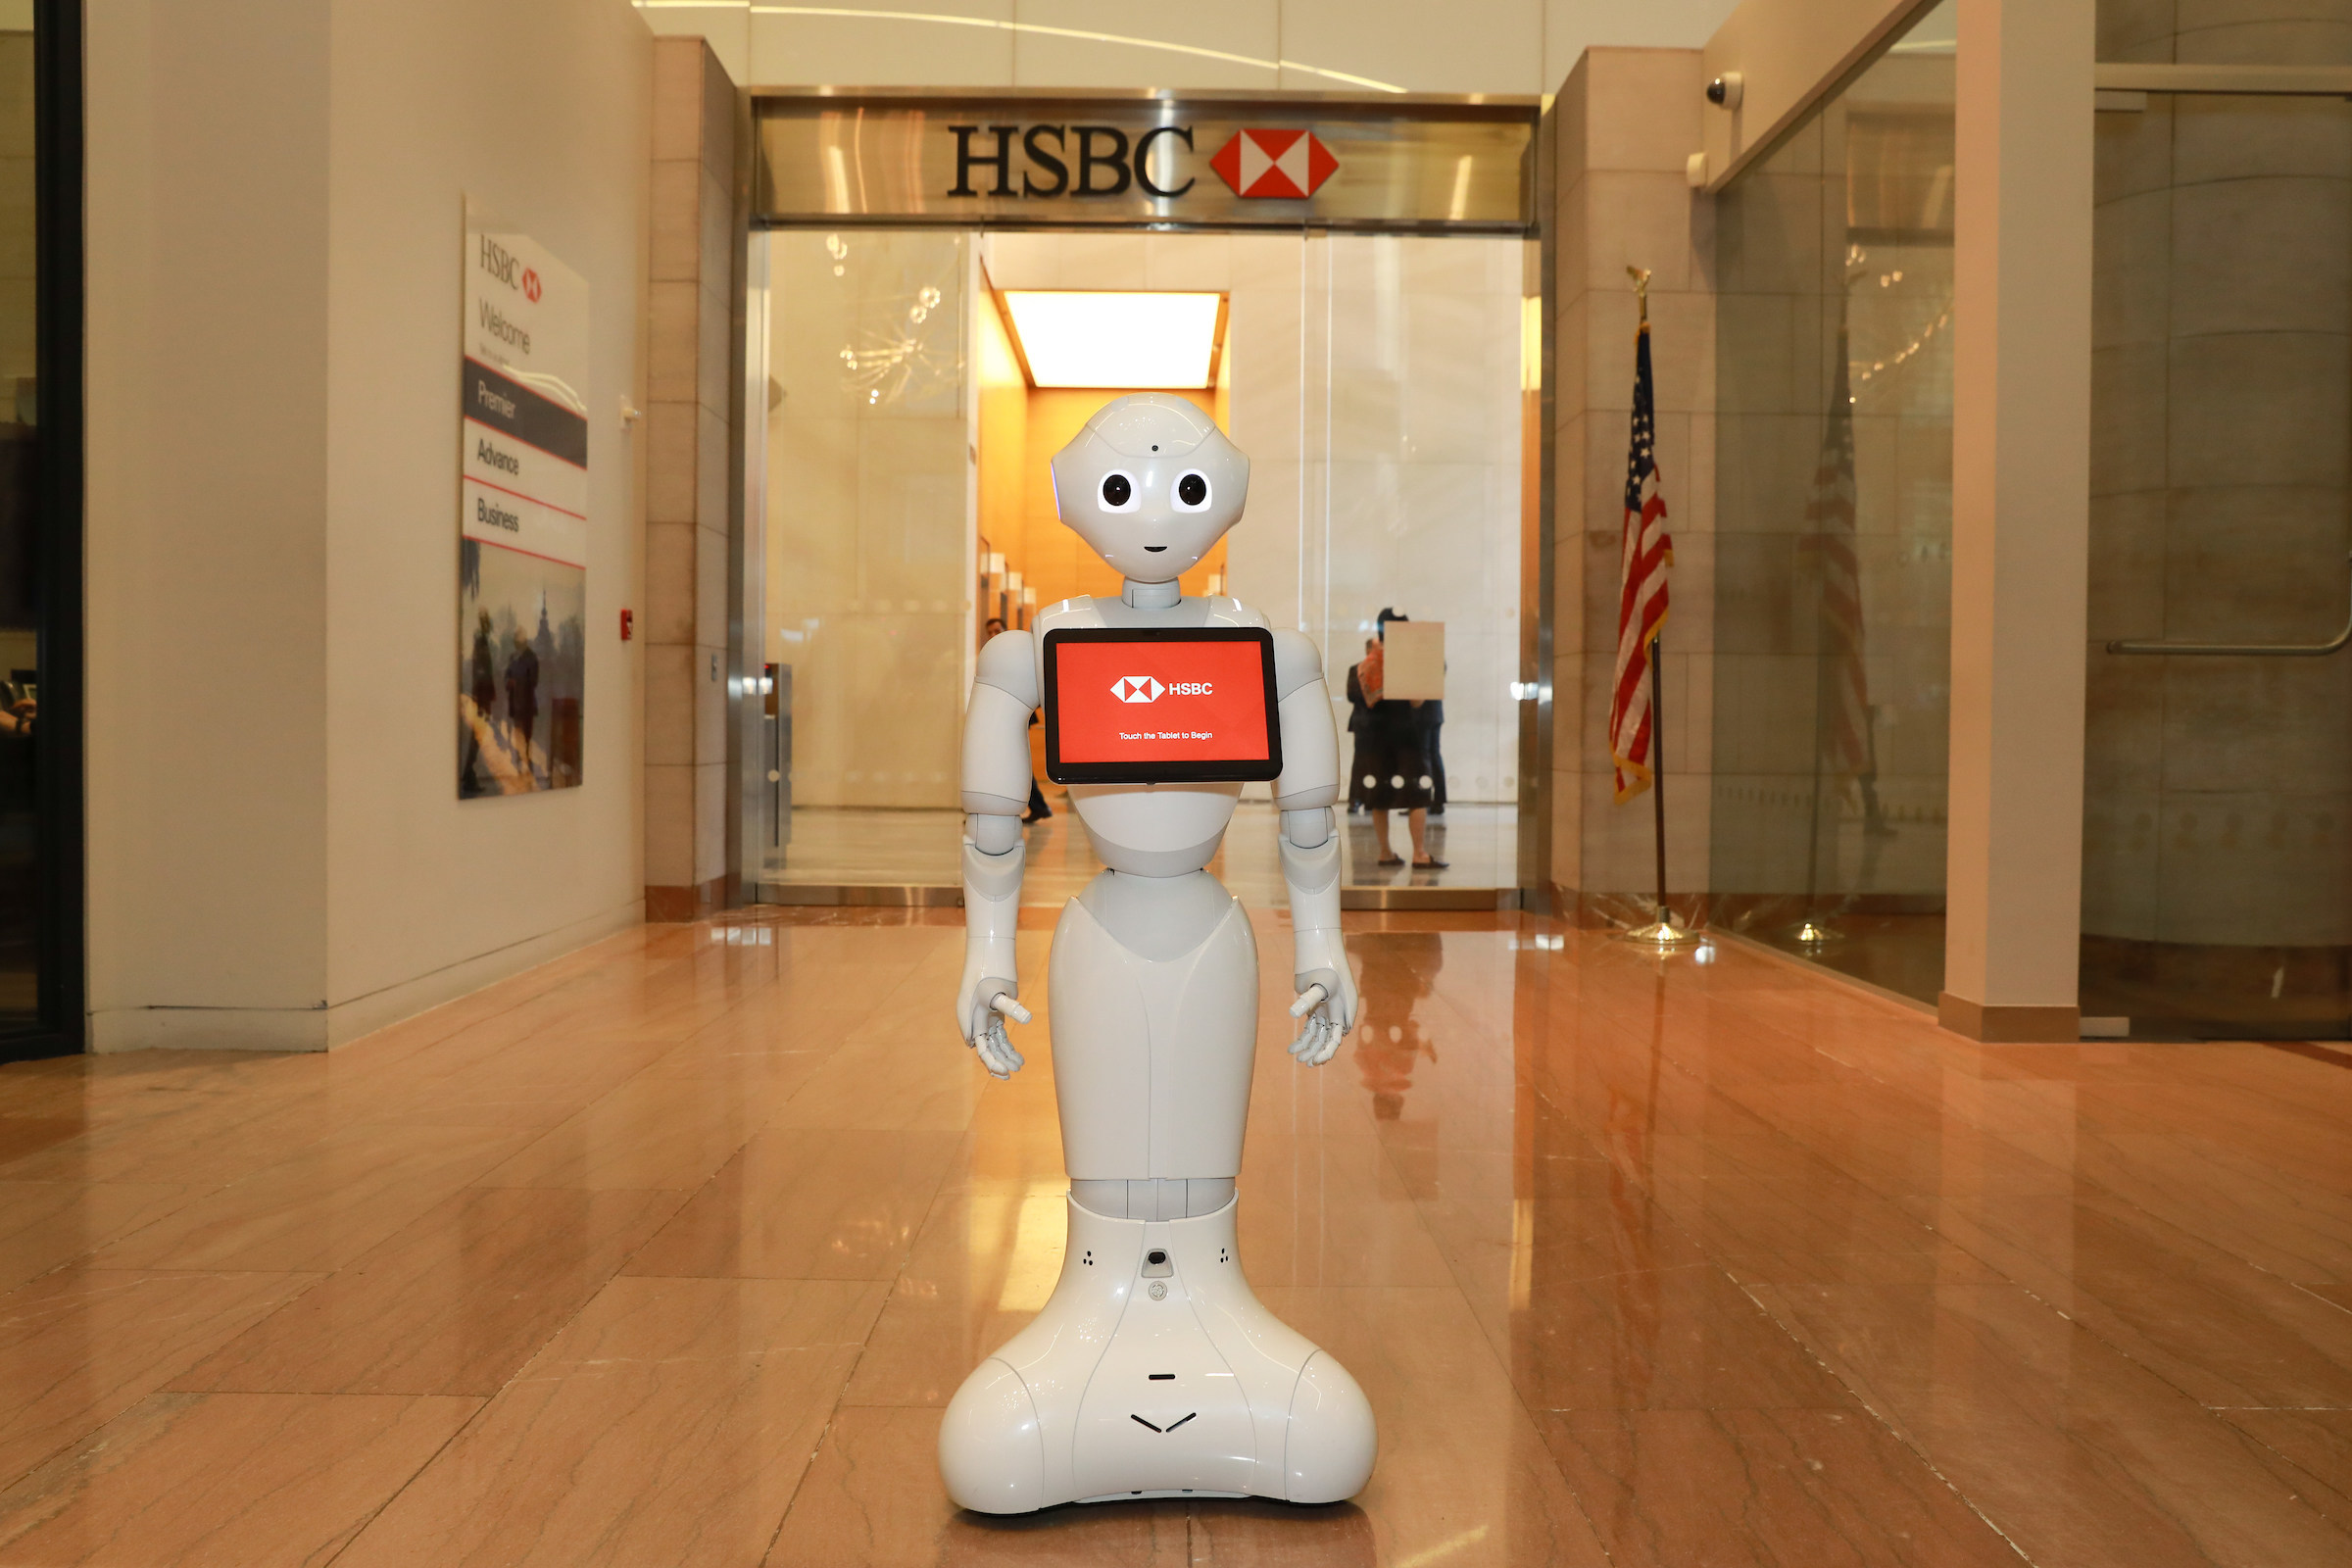 Pepper the robot at HSBC